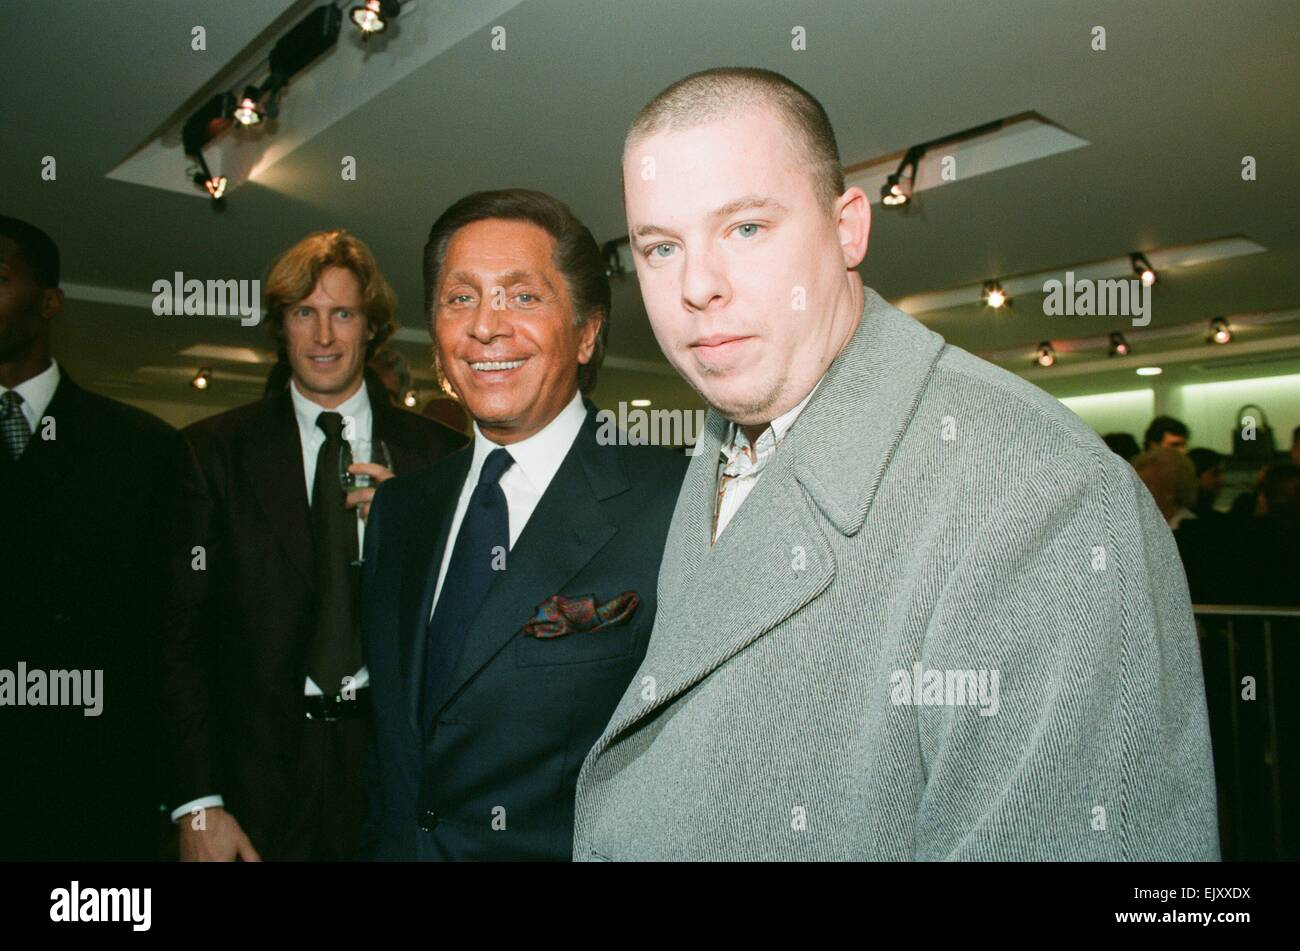 67d262726a52b British fashion designer Alexander McQueen (right) seen here with Valentino  at the opening of